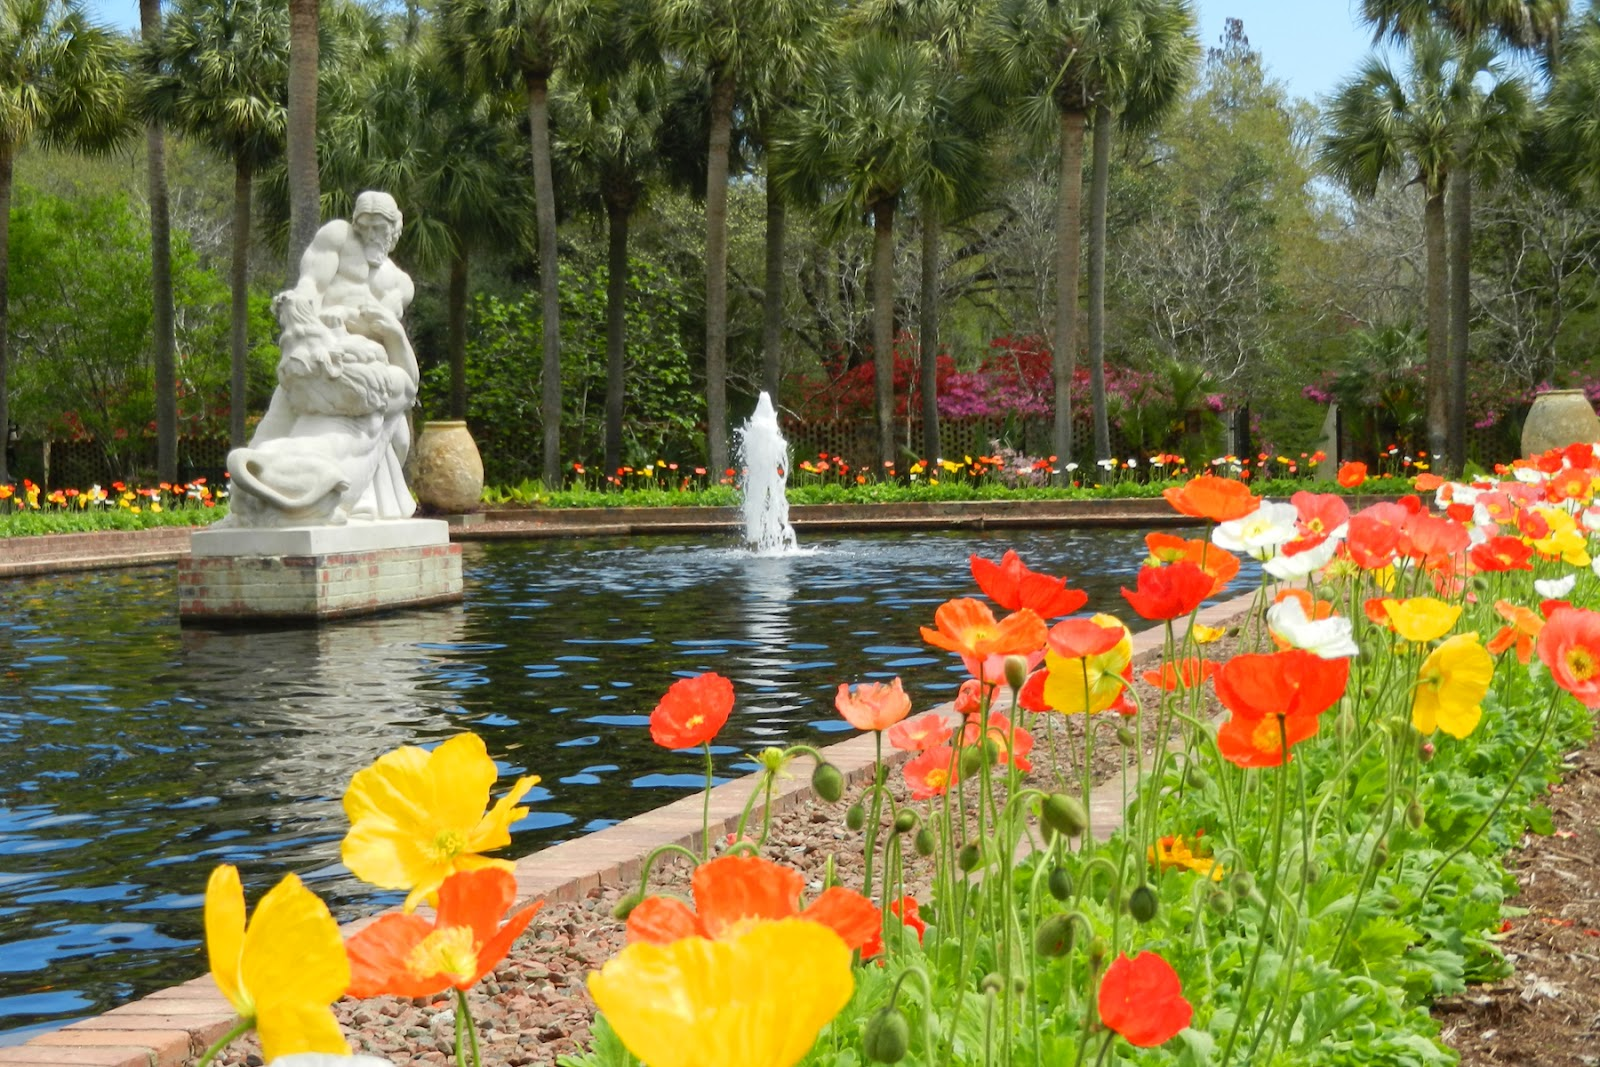 Fun filled june at brookgreen gardens for Myrtle beach arts and crafts festival